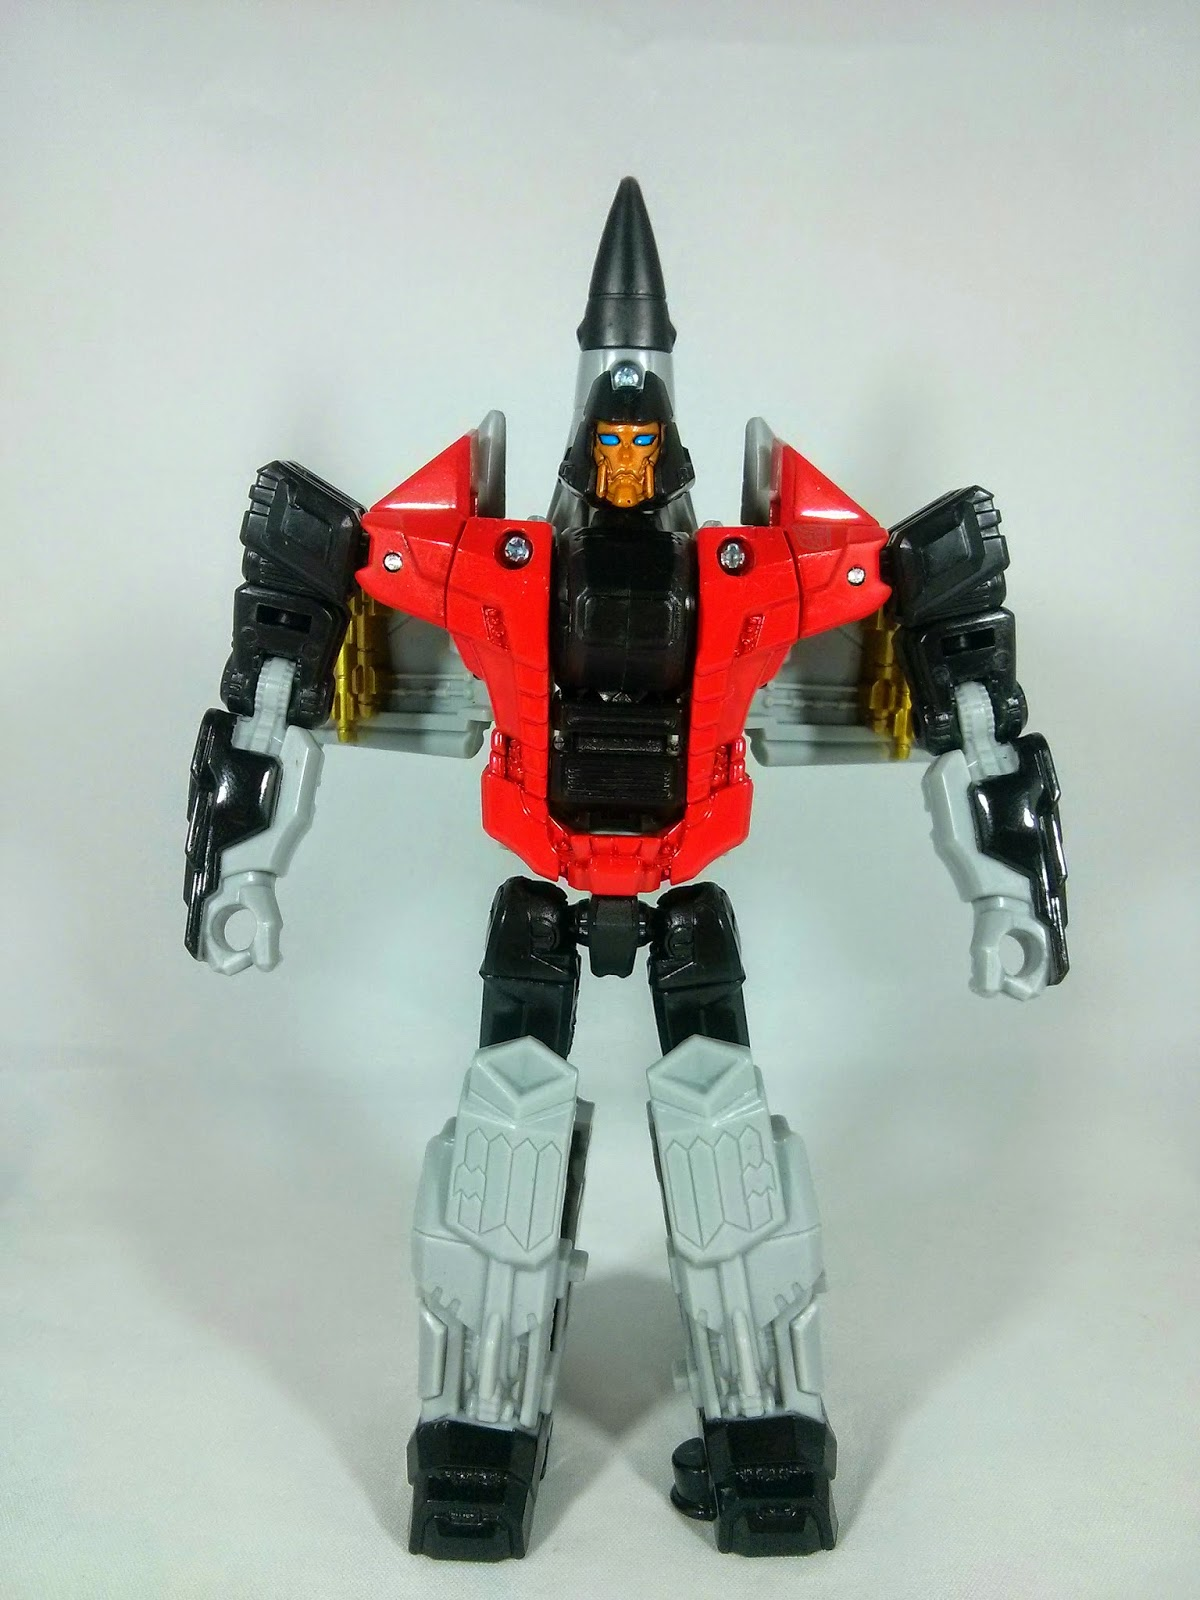 Skydive in robot mode